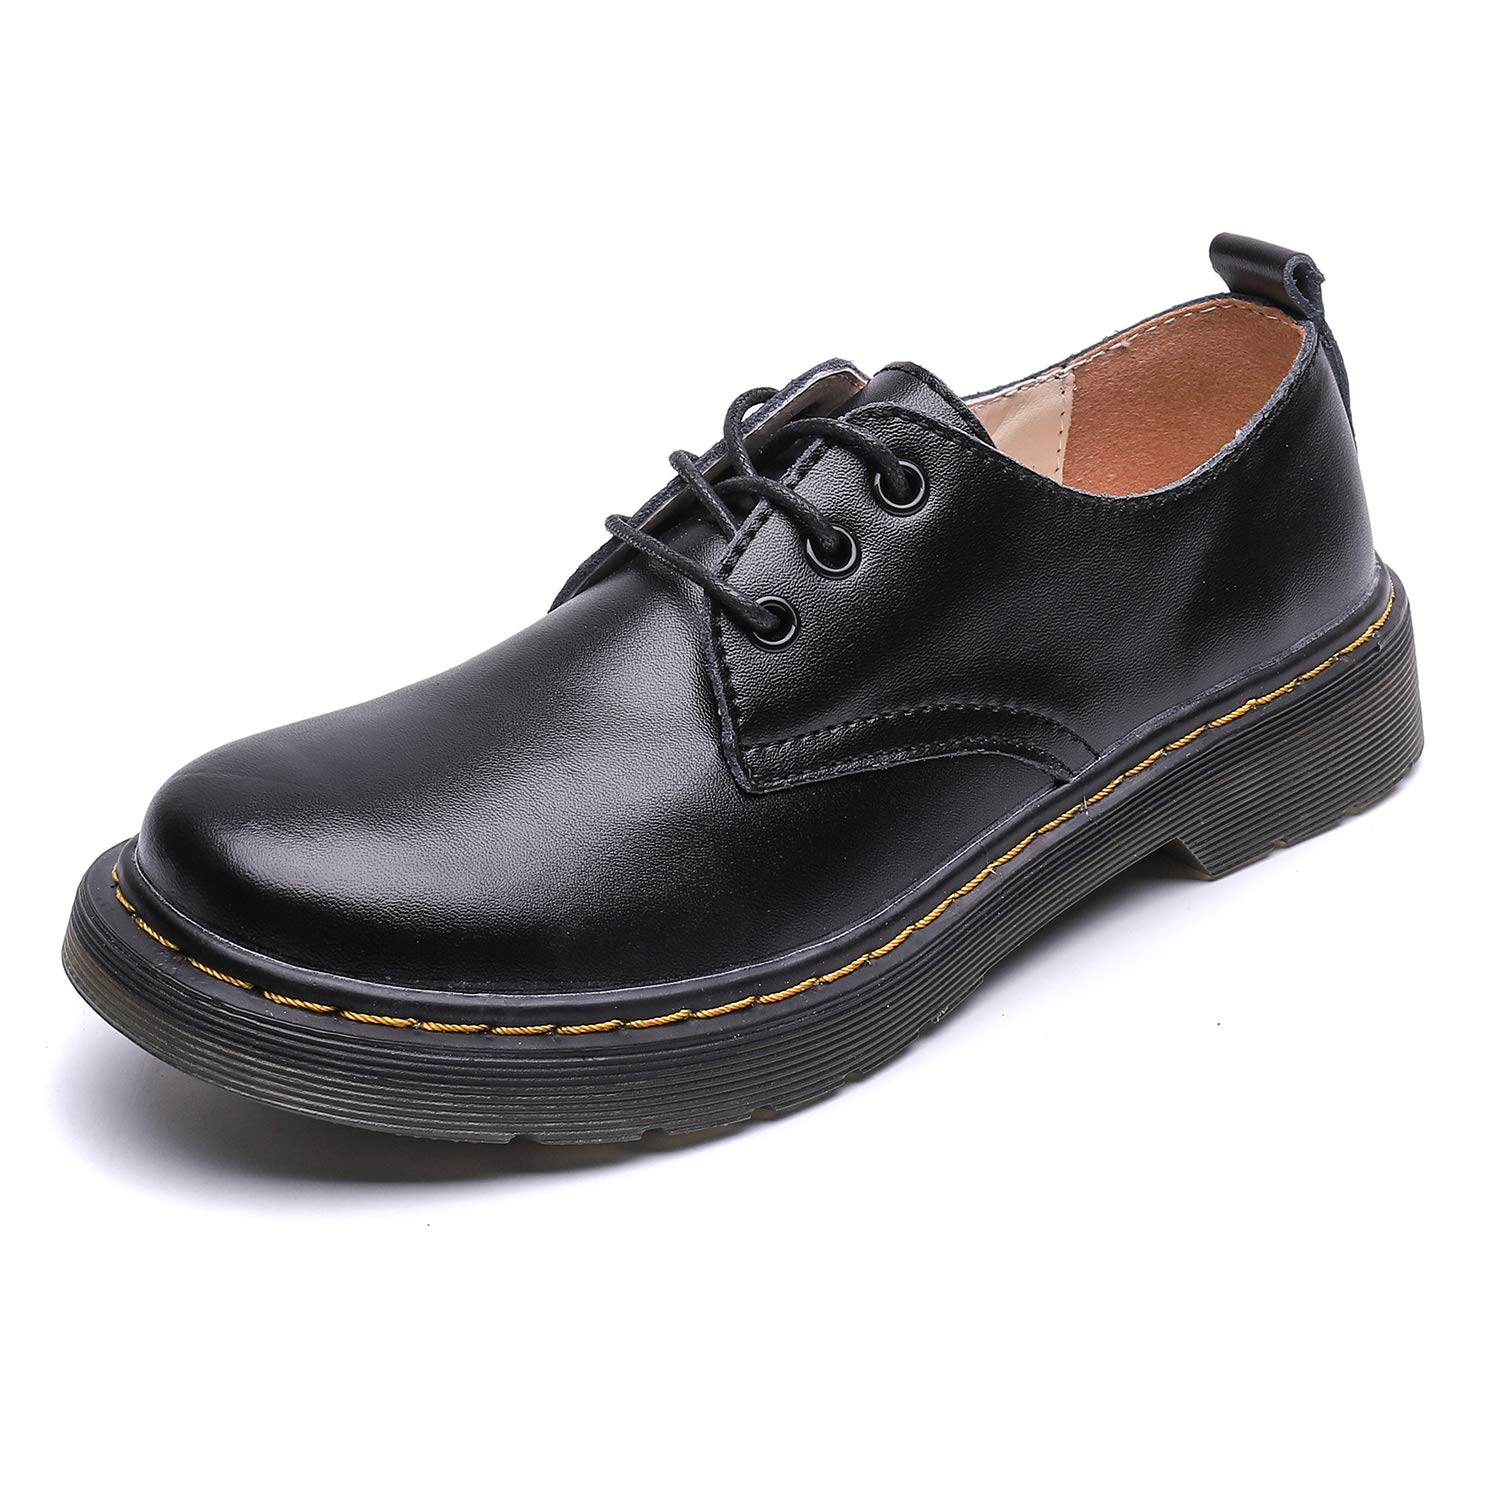 Resonda Womens Leather Shoes Flat Lace Up Oxfords Derby Shoes for Girls ladis,Black,Women us8.5/us9 by Resonda